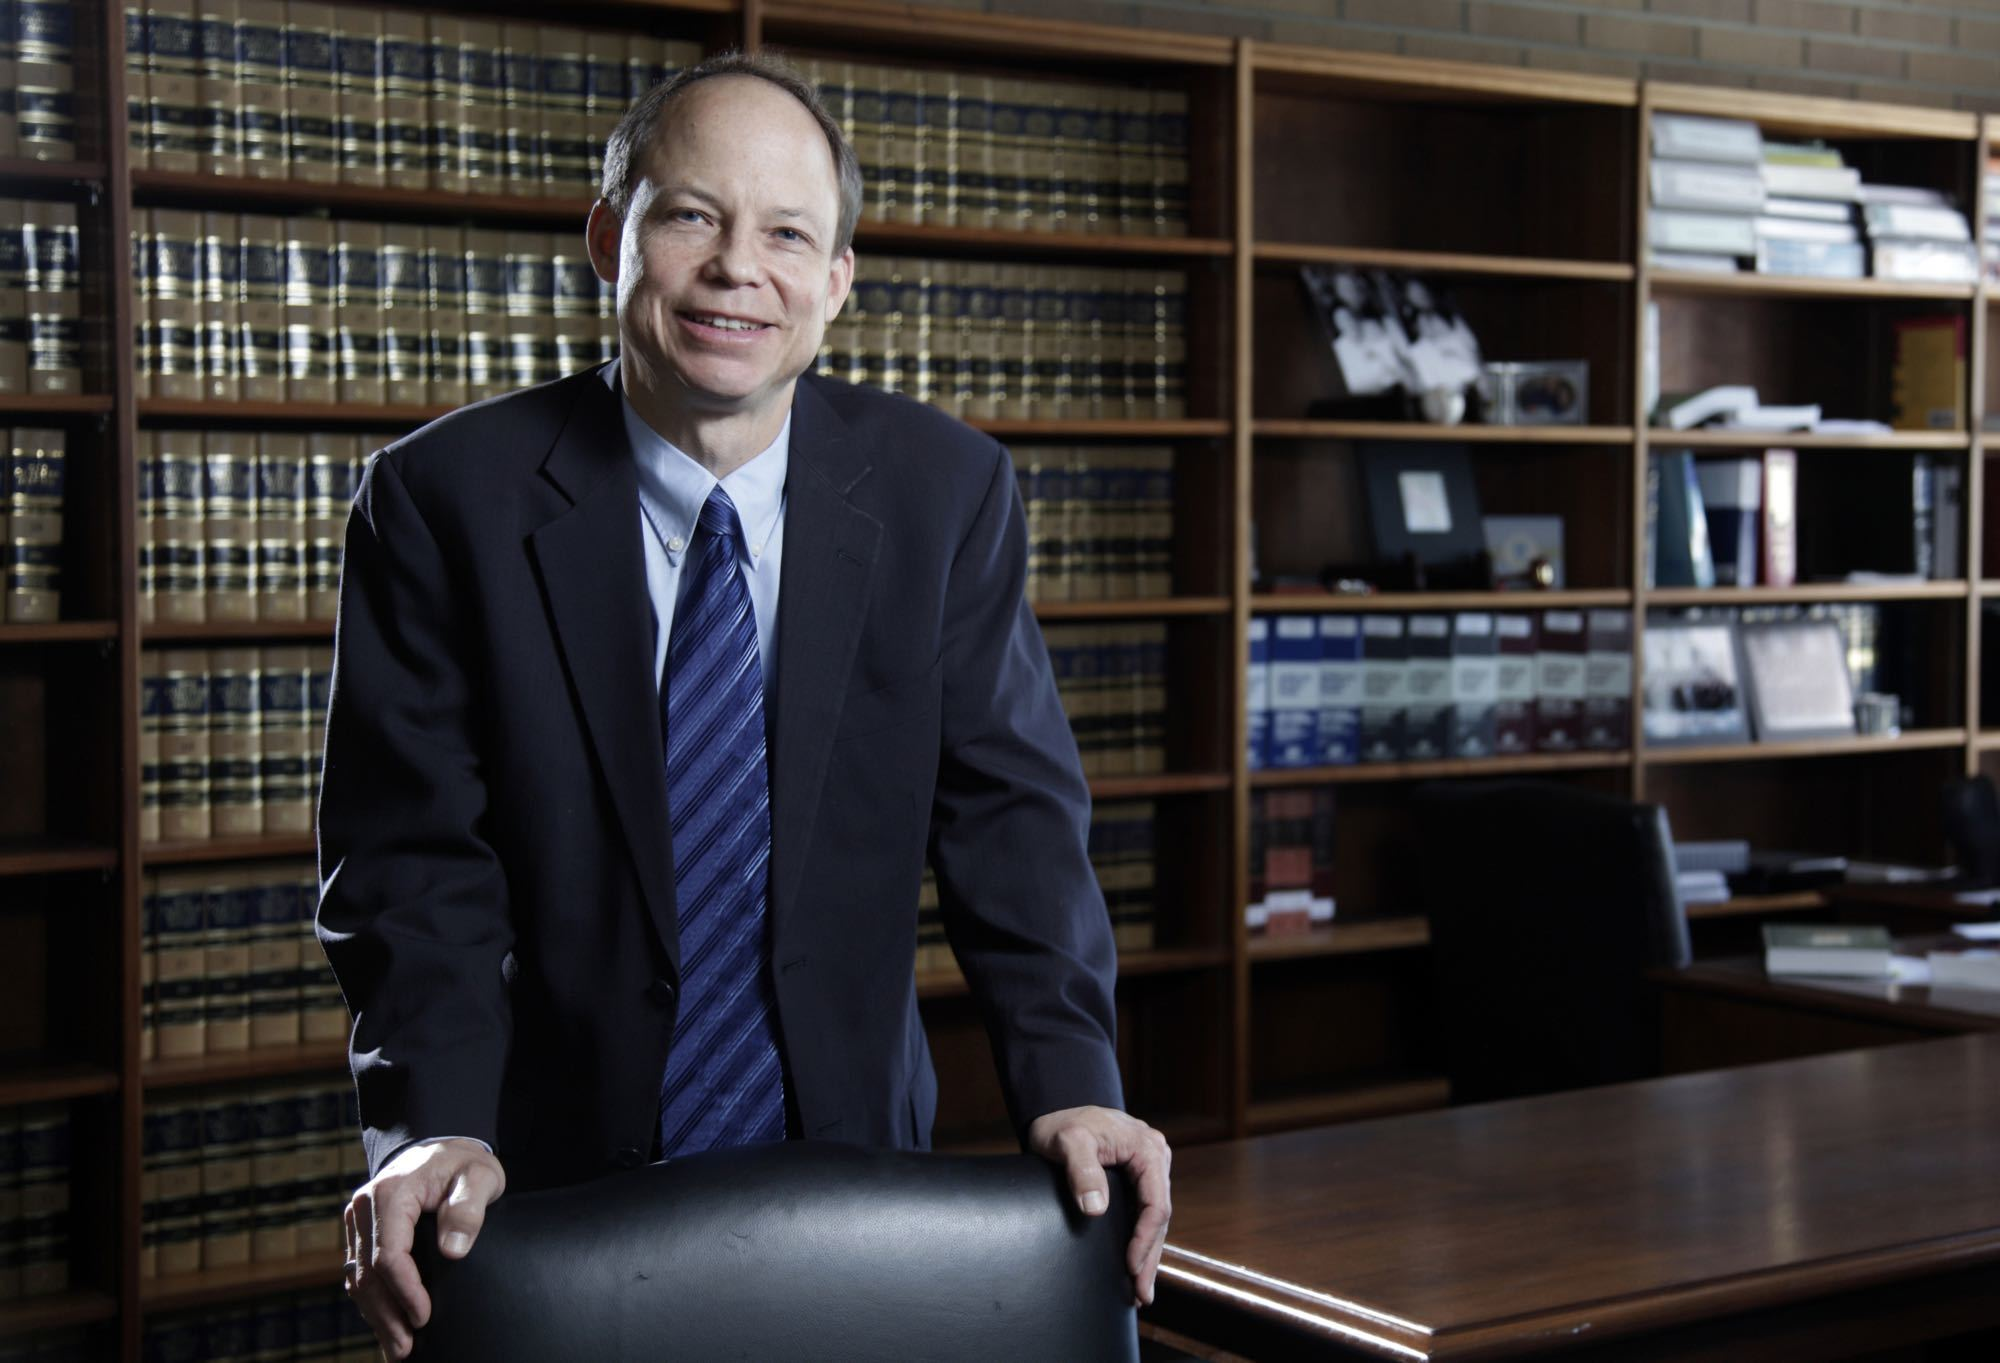 Judge Persky reassigned to civil cases at SJ courthouse